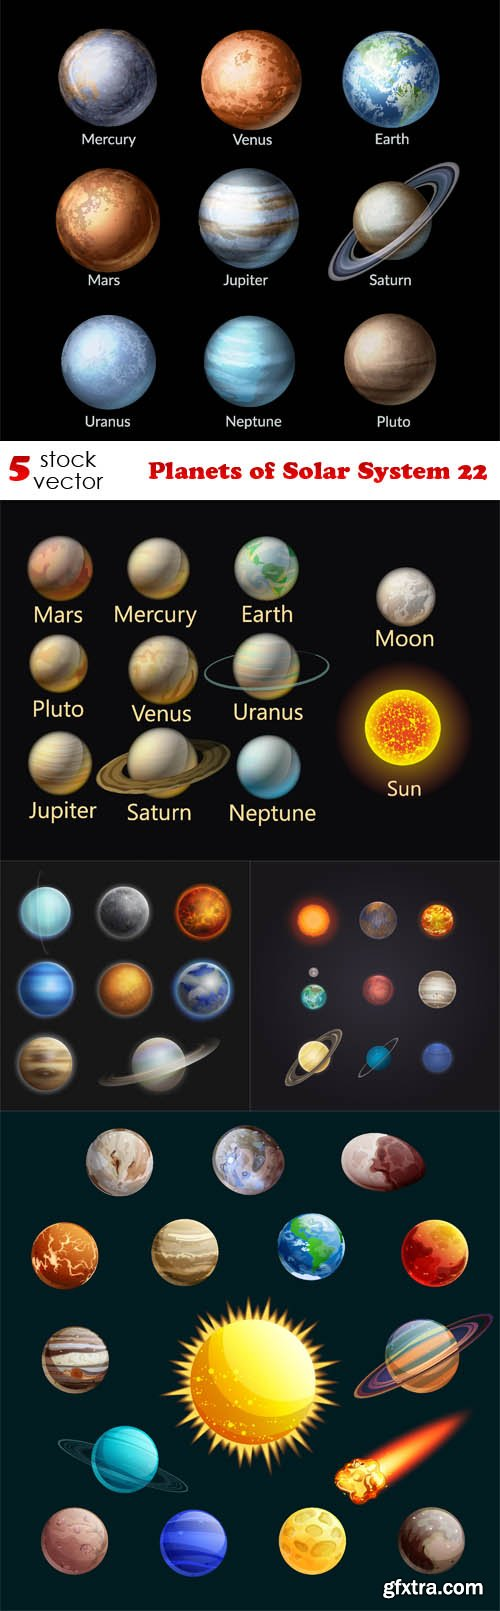 Vectors - Planets of Solar System 22